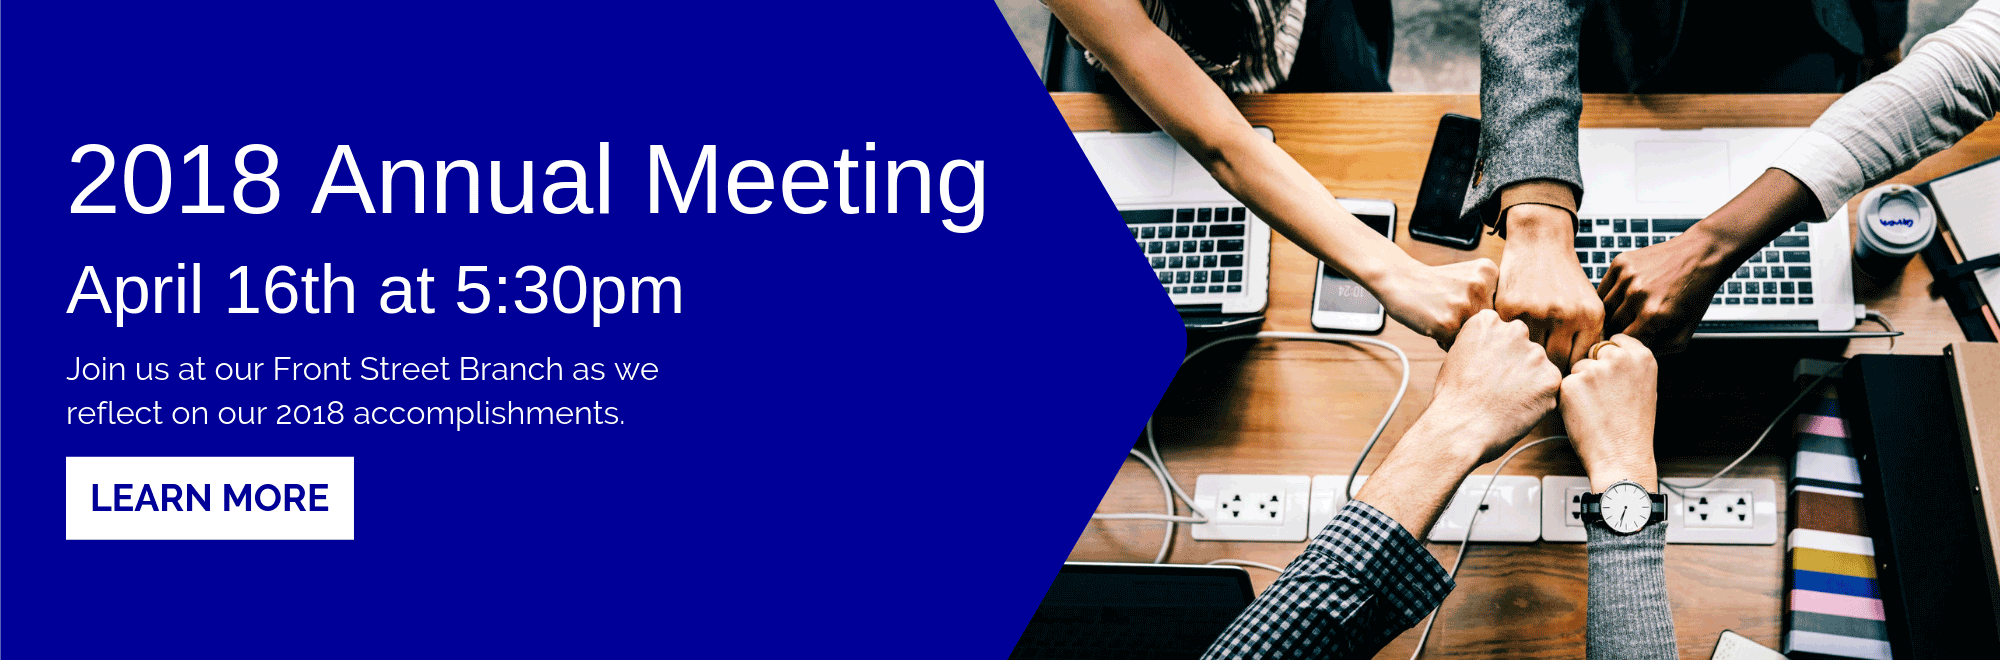 Sign up for our 2018 Annual Meeting on April 16th at 5:30 pm